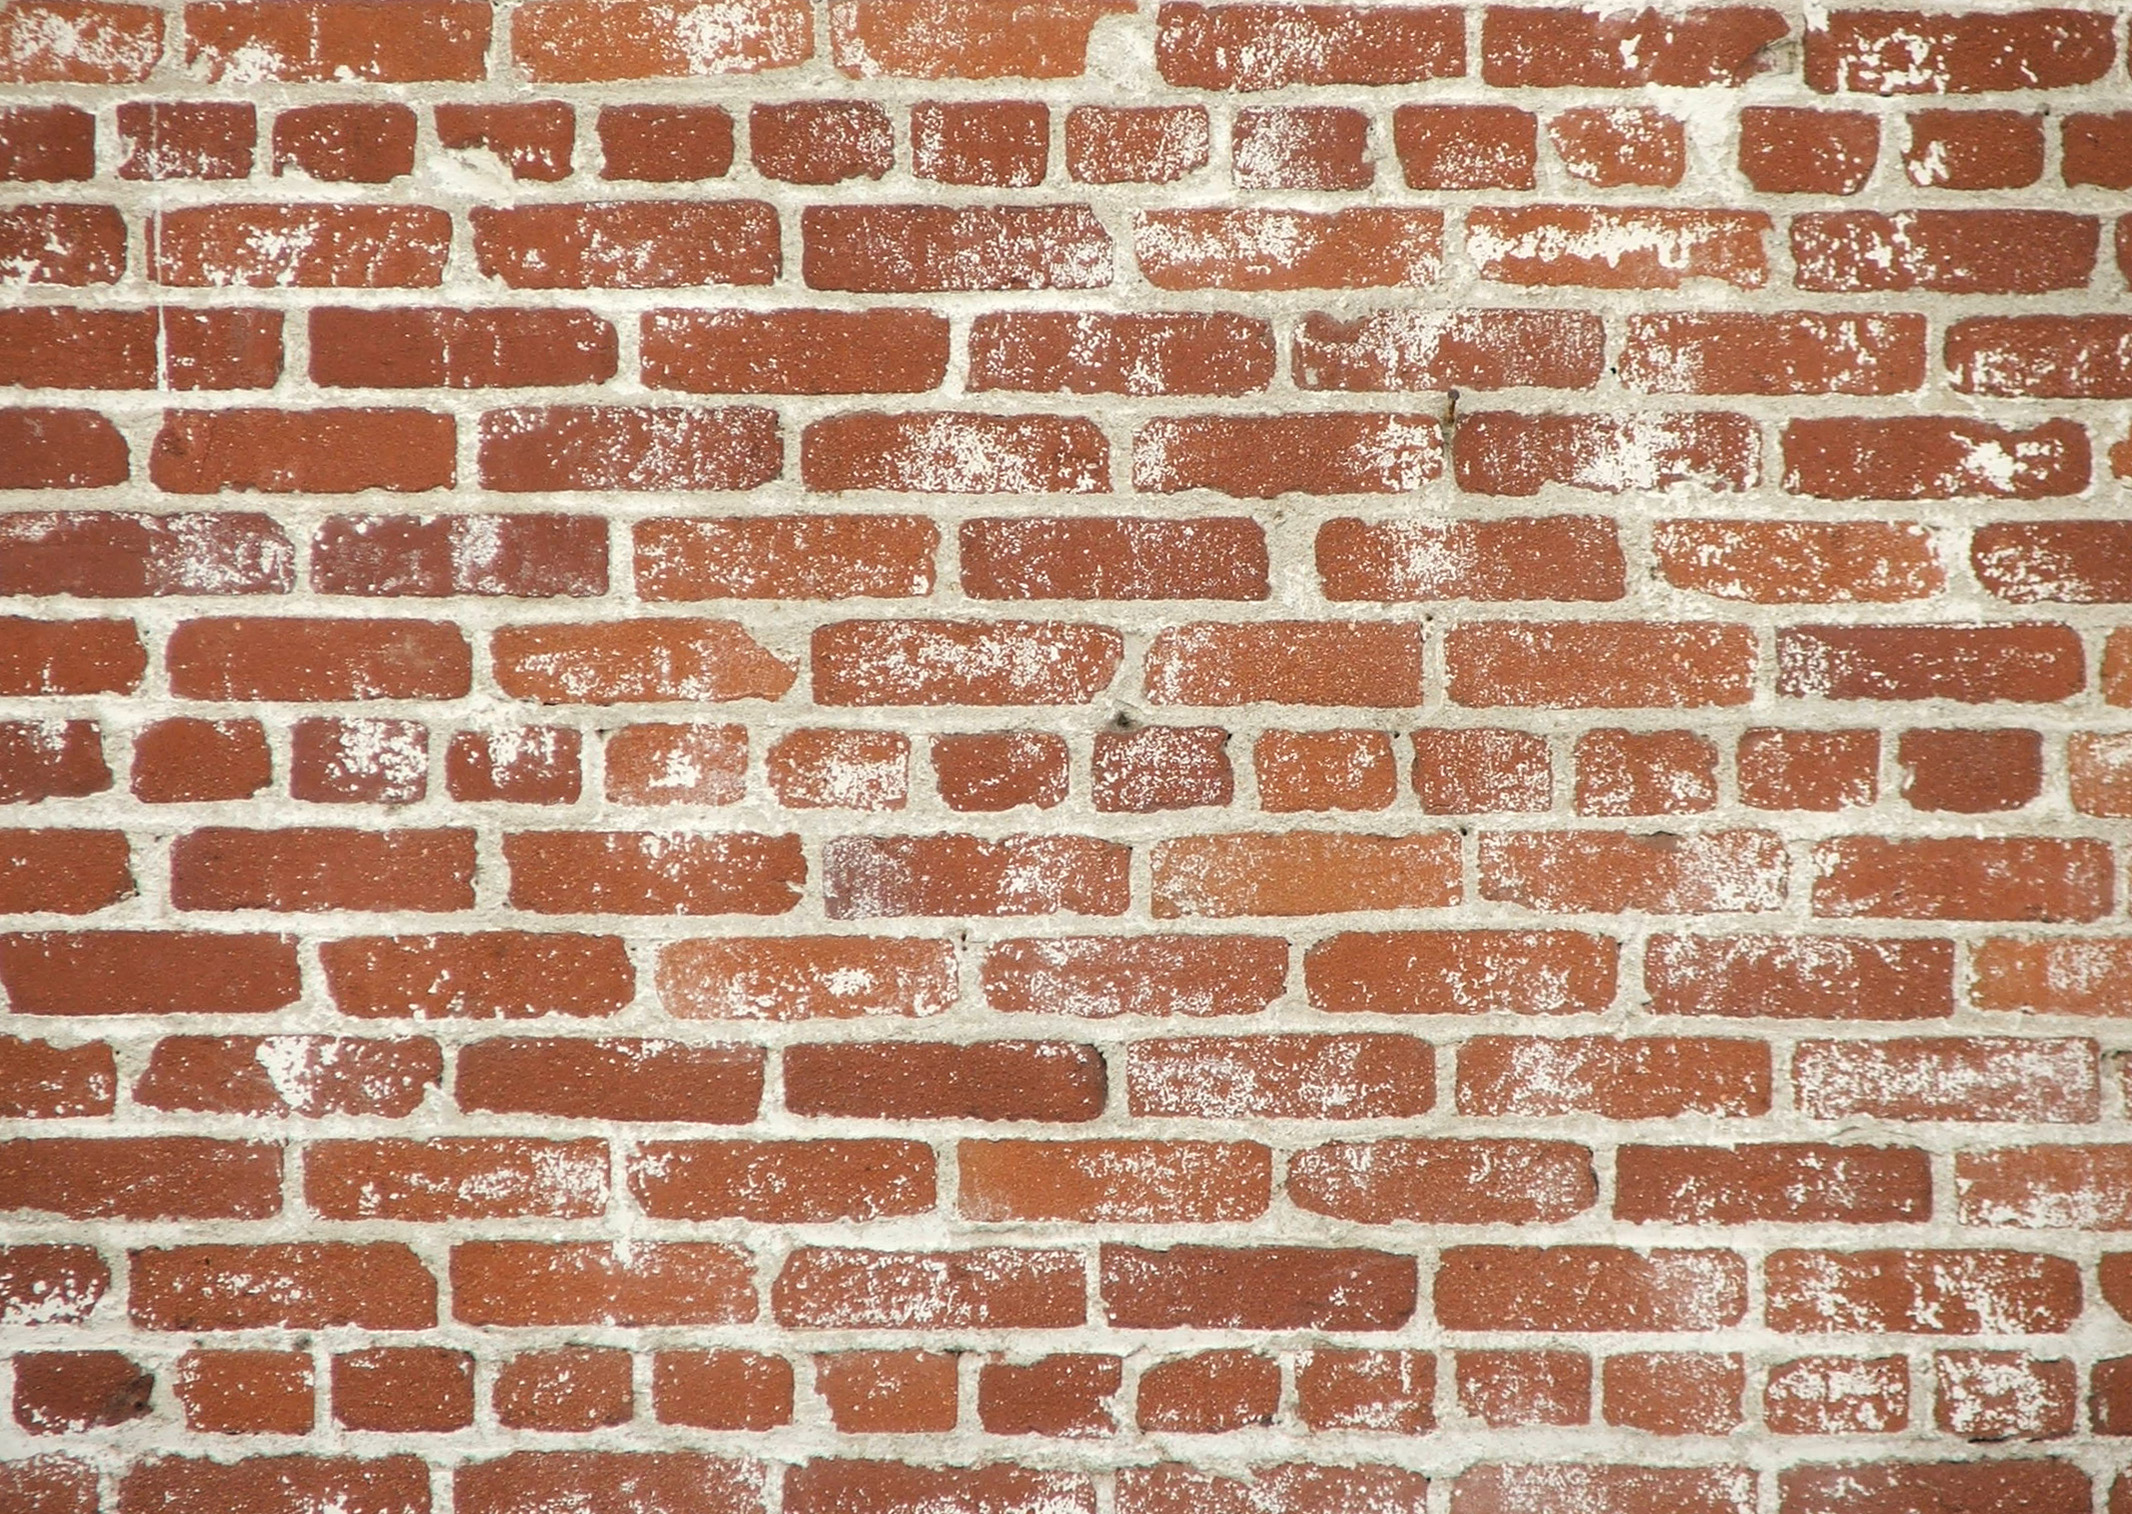 Brick wall background clipart picture free Free Brick Wall Cliparts, Download Free Clip Art, Free Clip Art on ... picture free